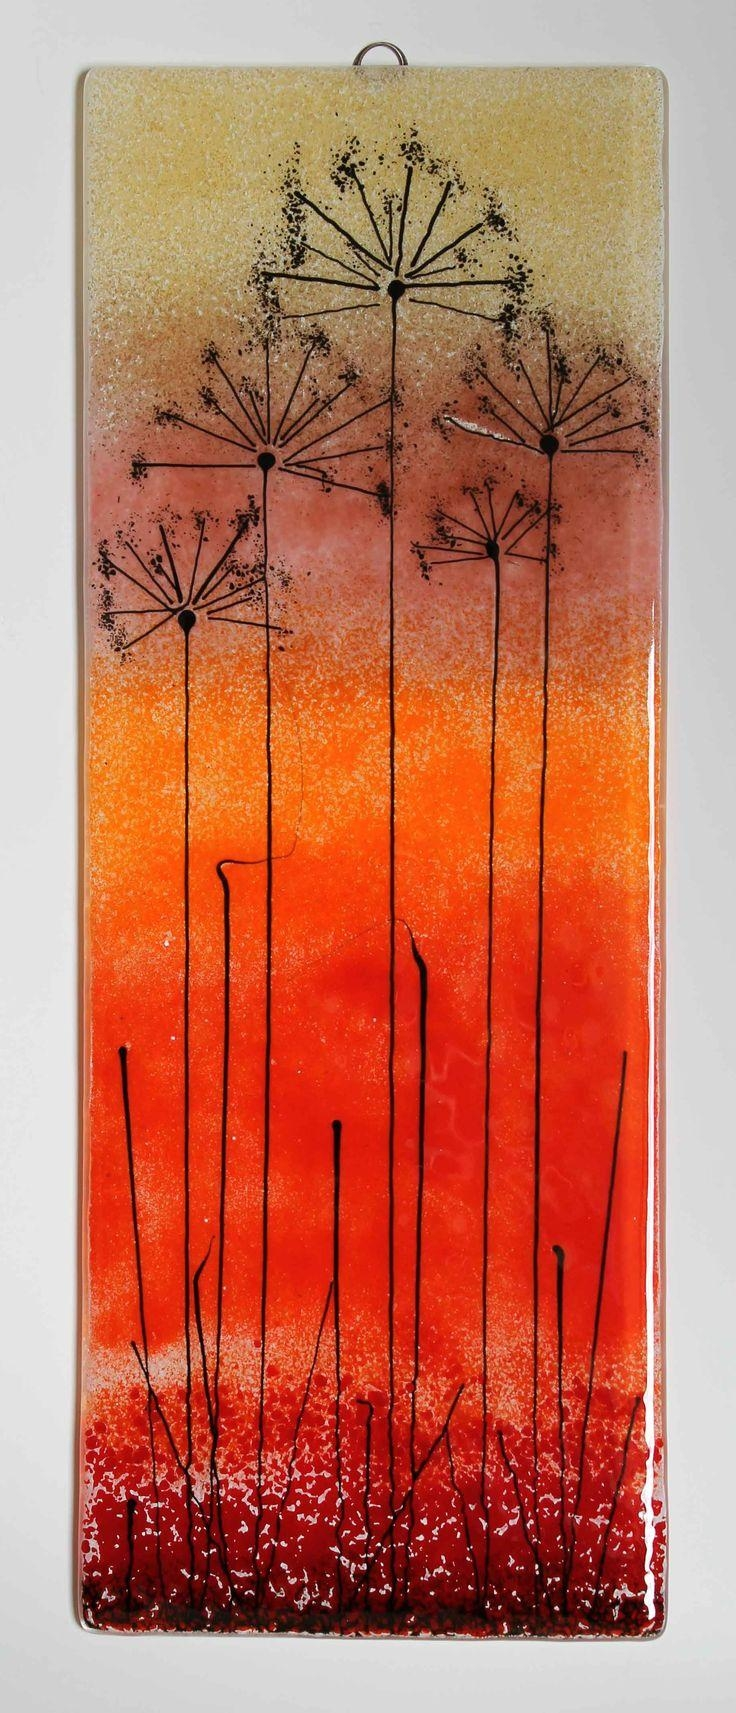 1914 Best Fused Glass – Artsy Fartsy Images On Pinterest | Stained Regarding Fused Glass Wall Art For Sale (View 17 of 20)